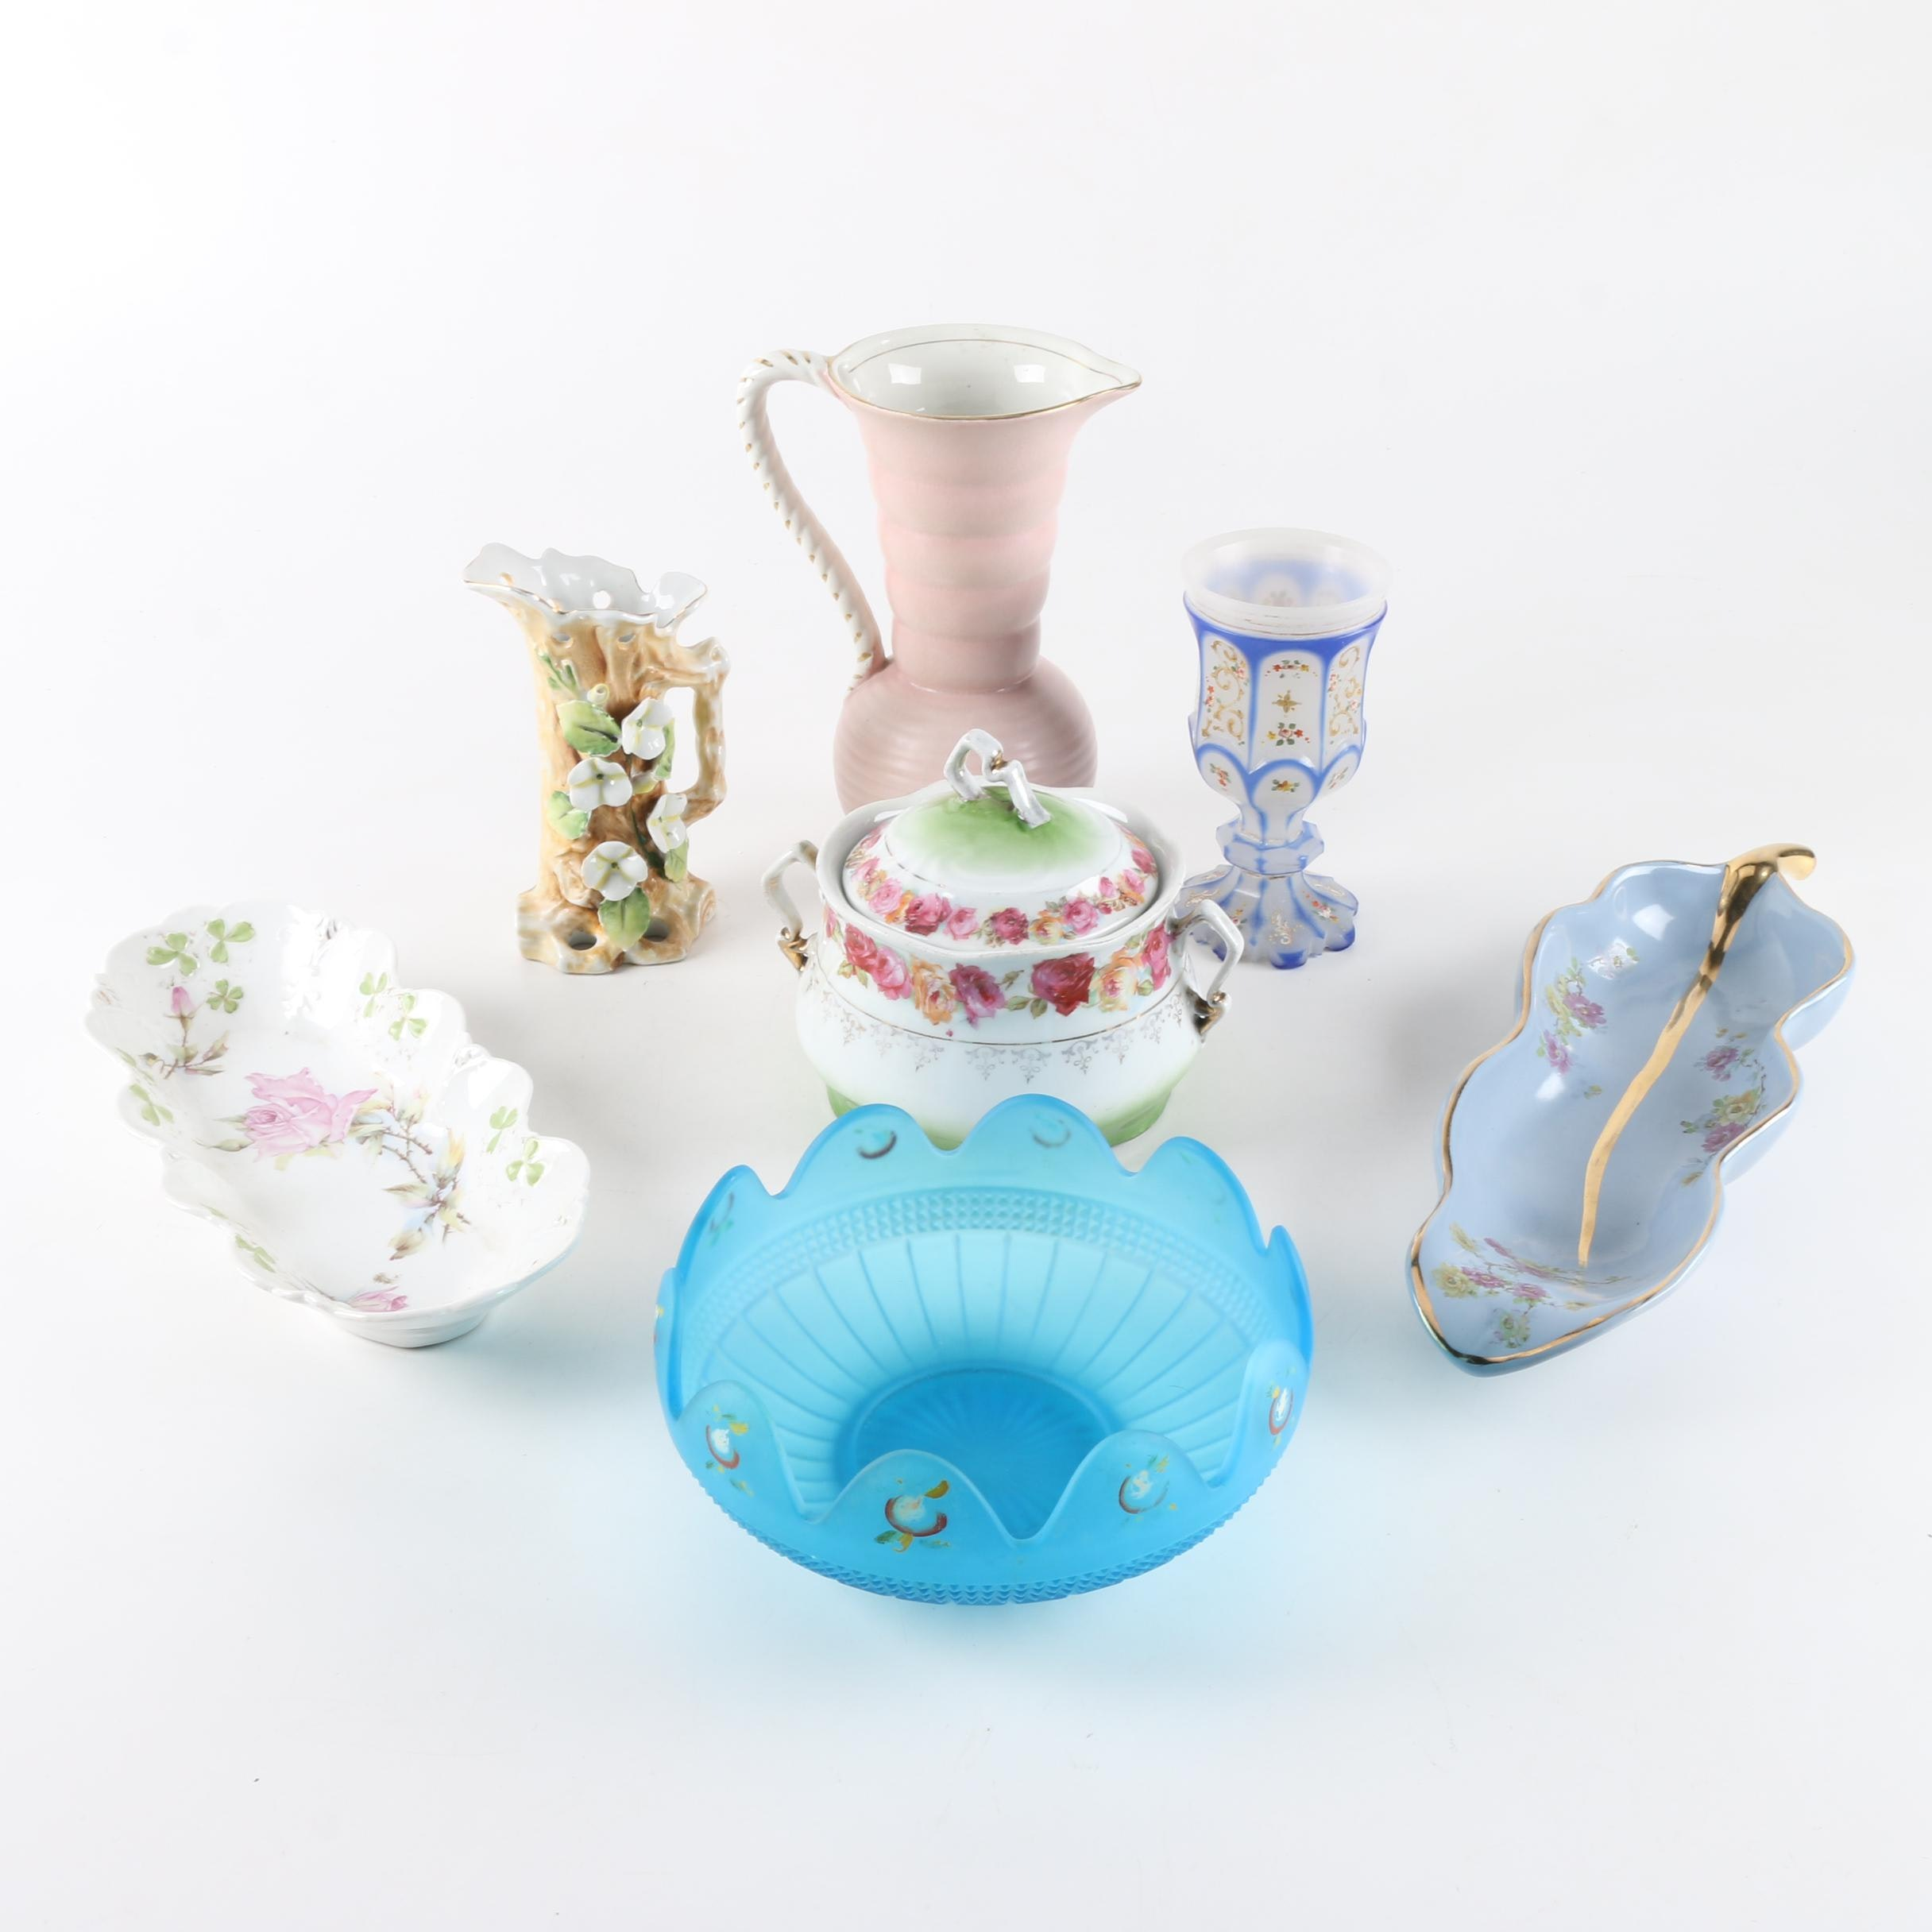 Ceramic Floral Serving Dishes and Pitchers